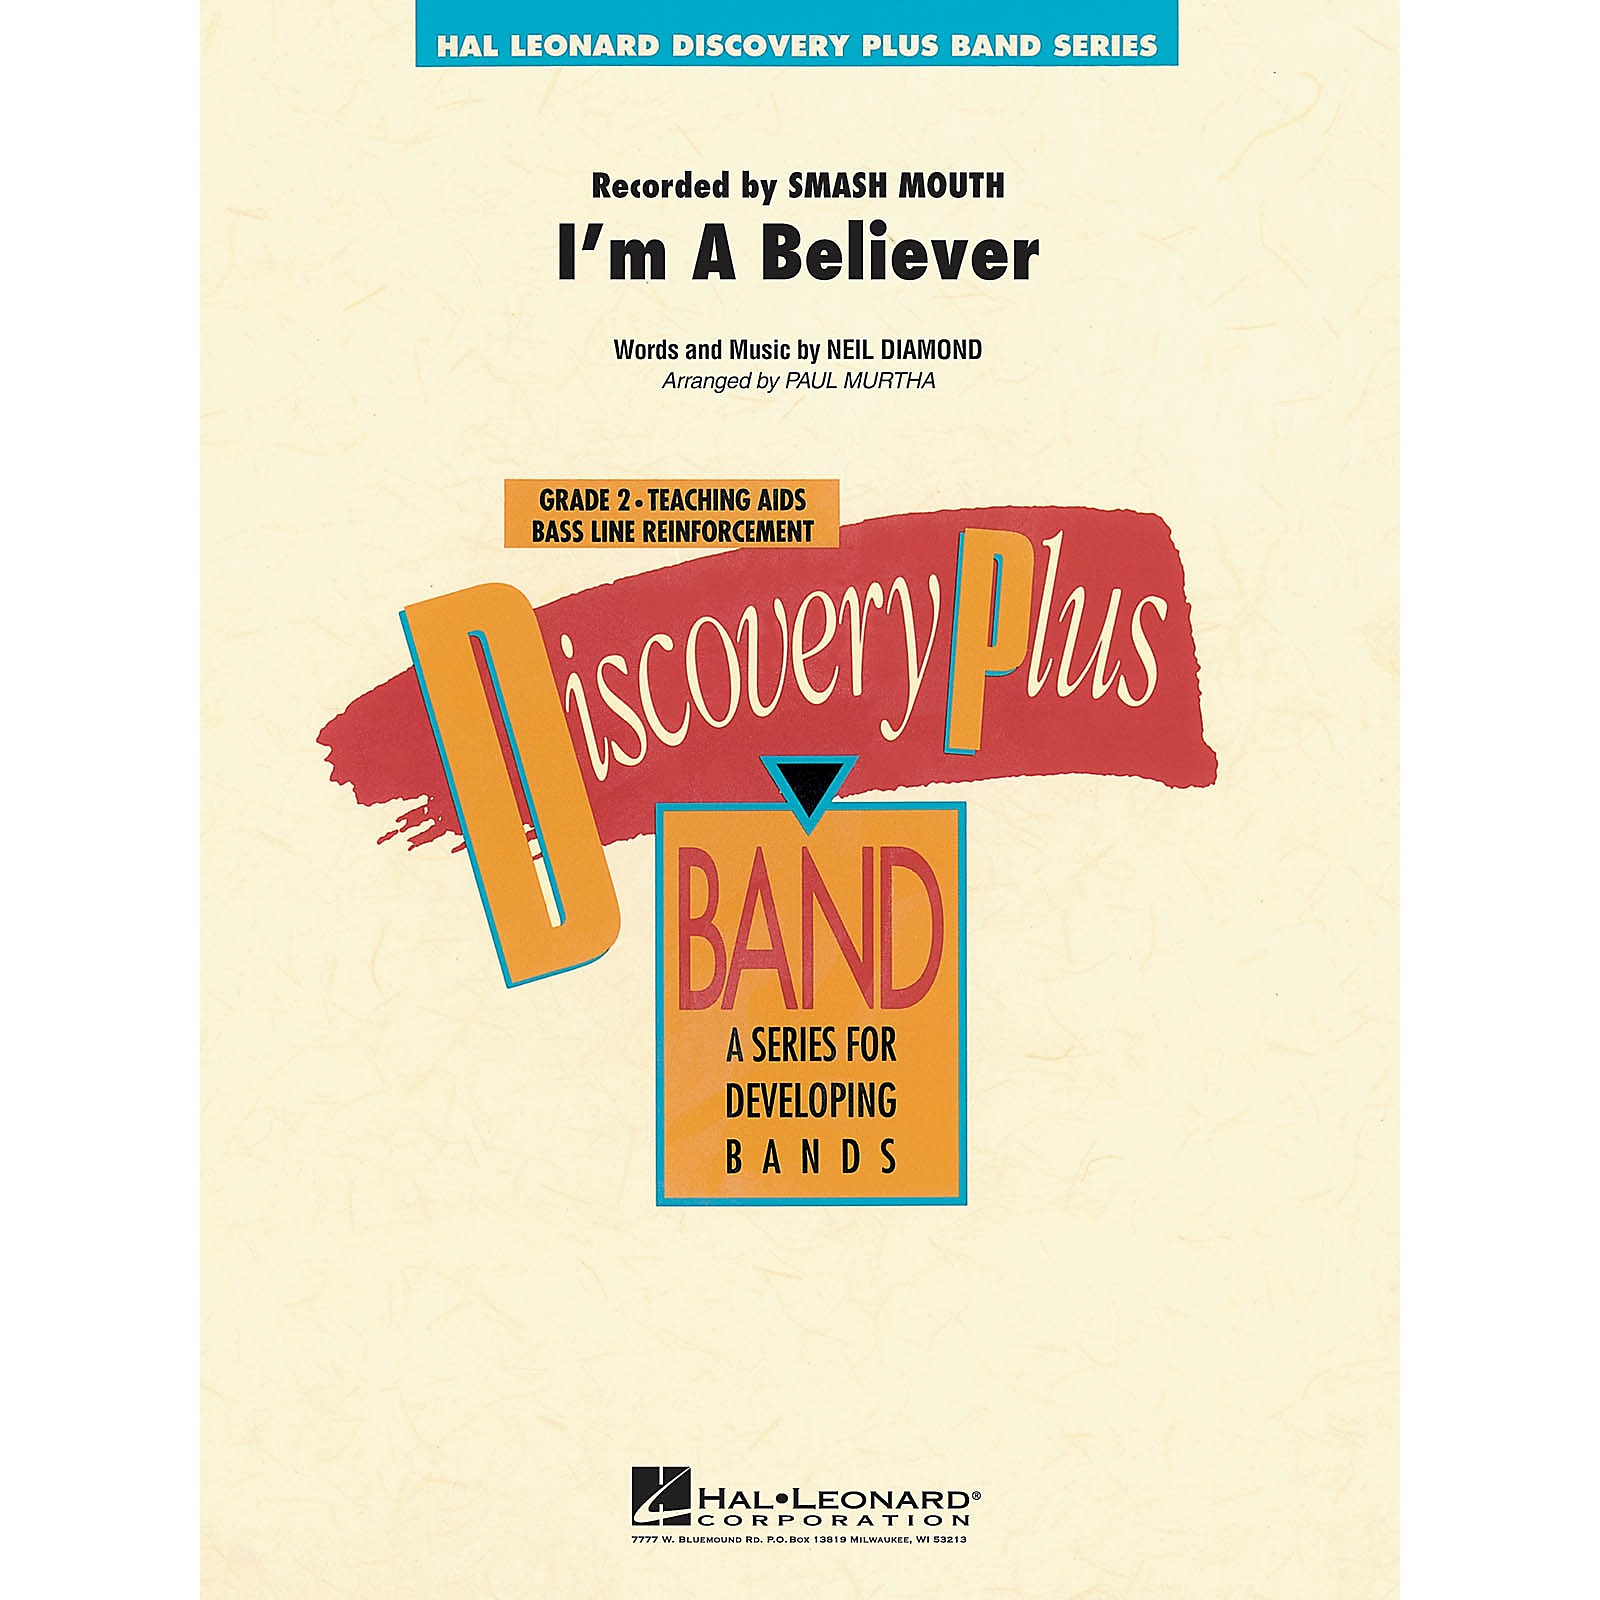 Hal Leonard I'm a Believer - Discovery Plus Concert Band Series Level 2 arranged by Paul Murtha